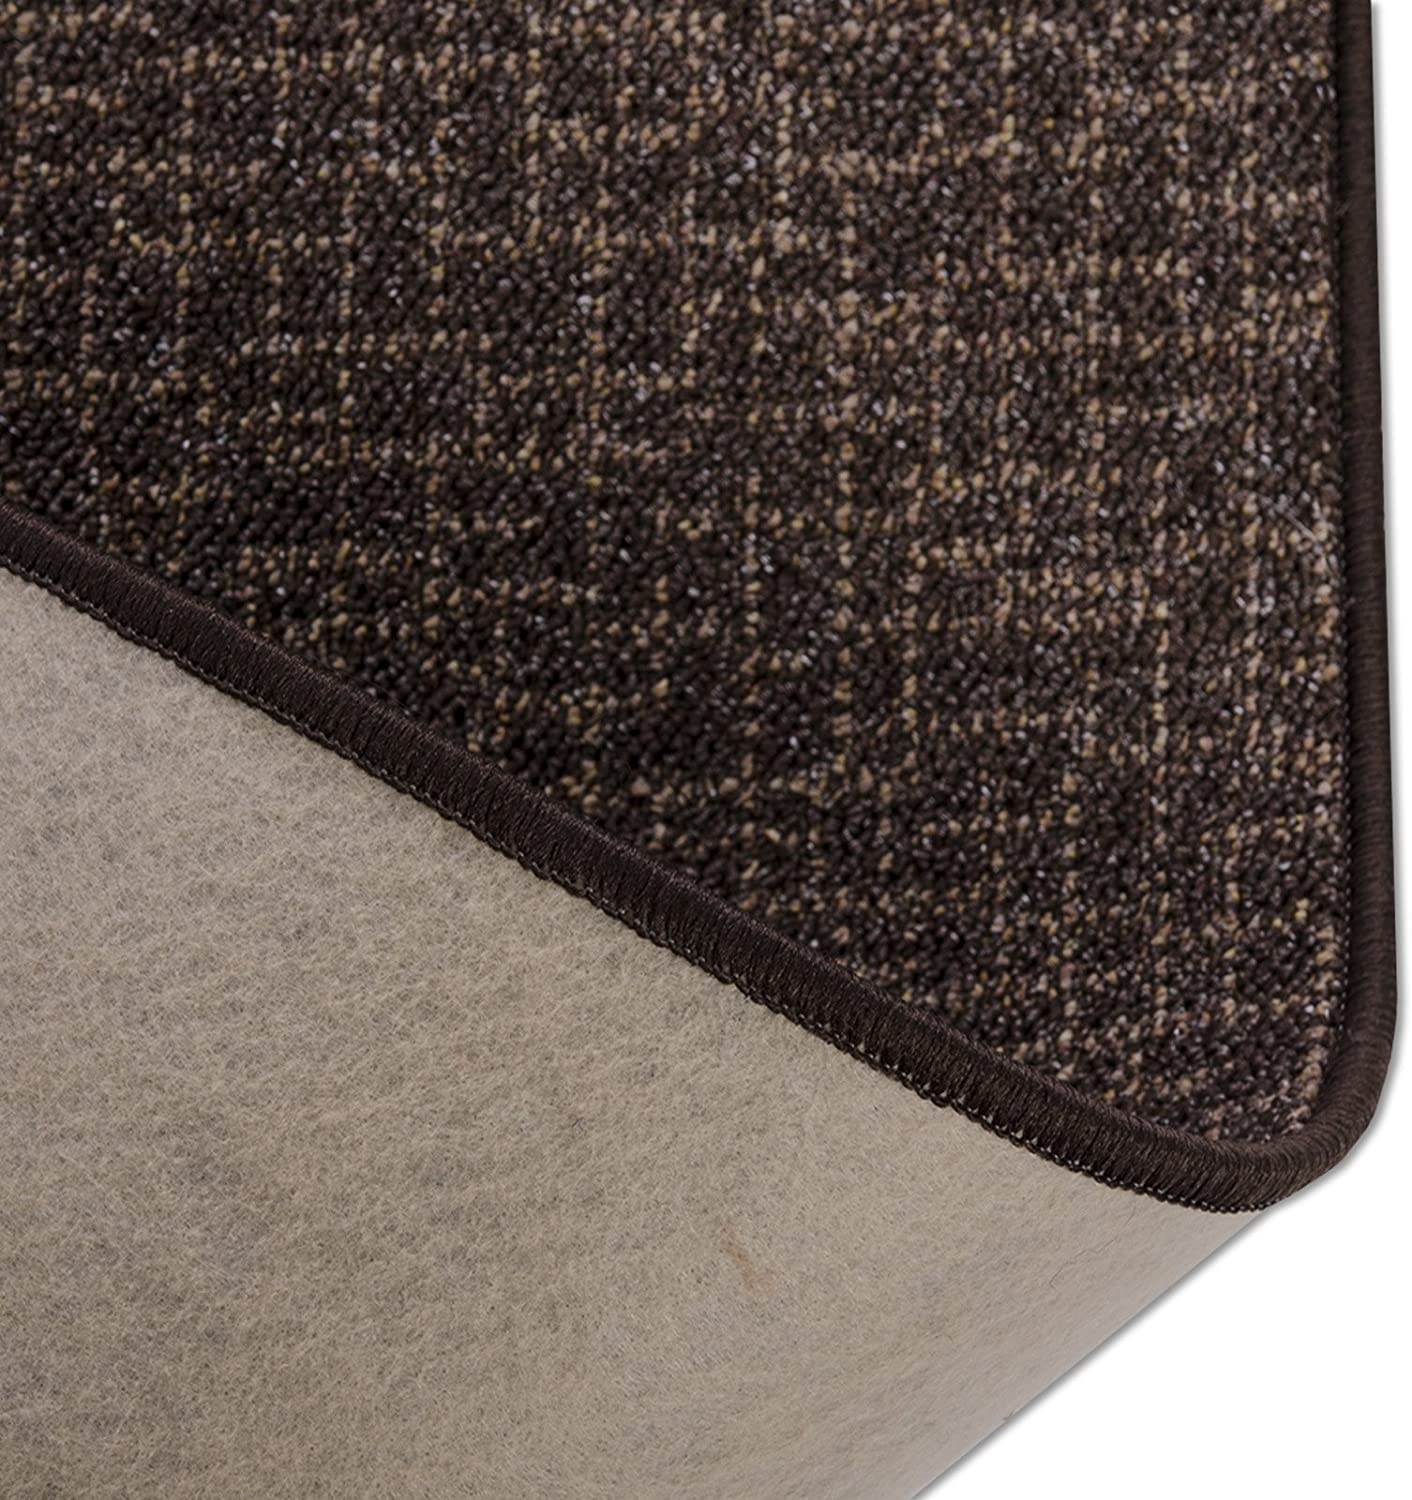 / Chocolate Tough and Durable chocolate 110 x 100 cm / 110/ cm Wide Per Metre/  Carpet Runner Bermuda Rug/